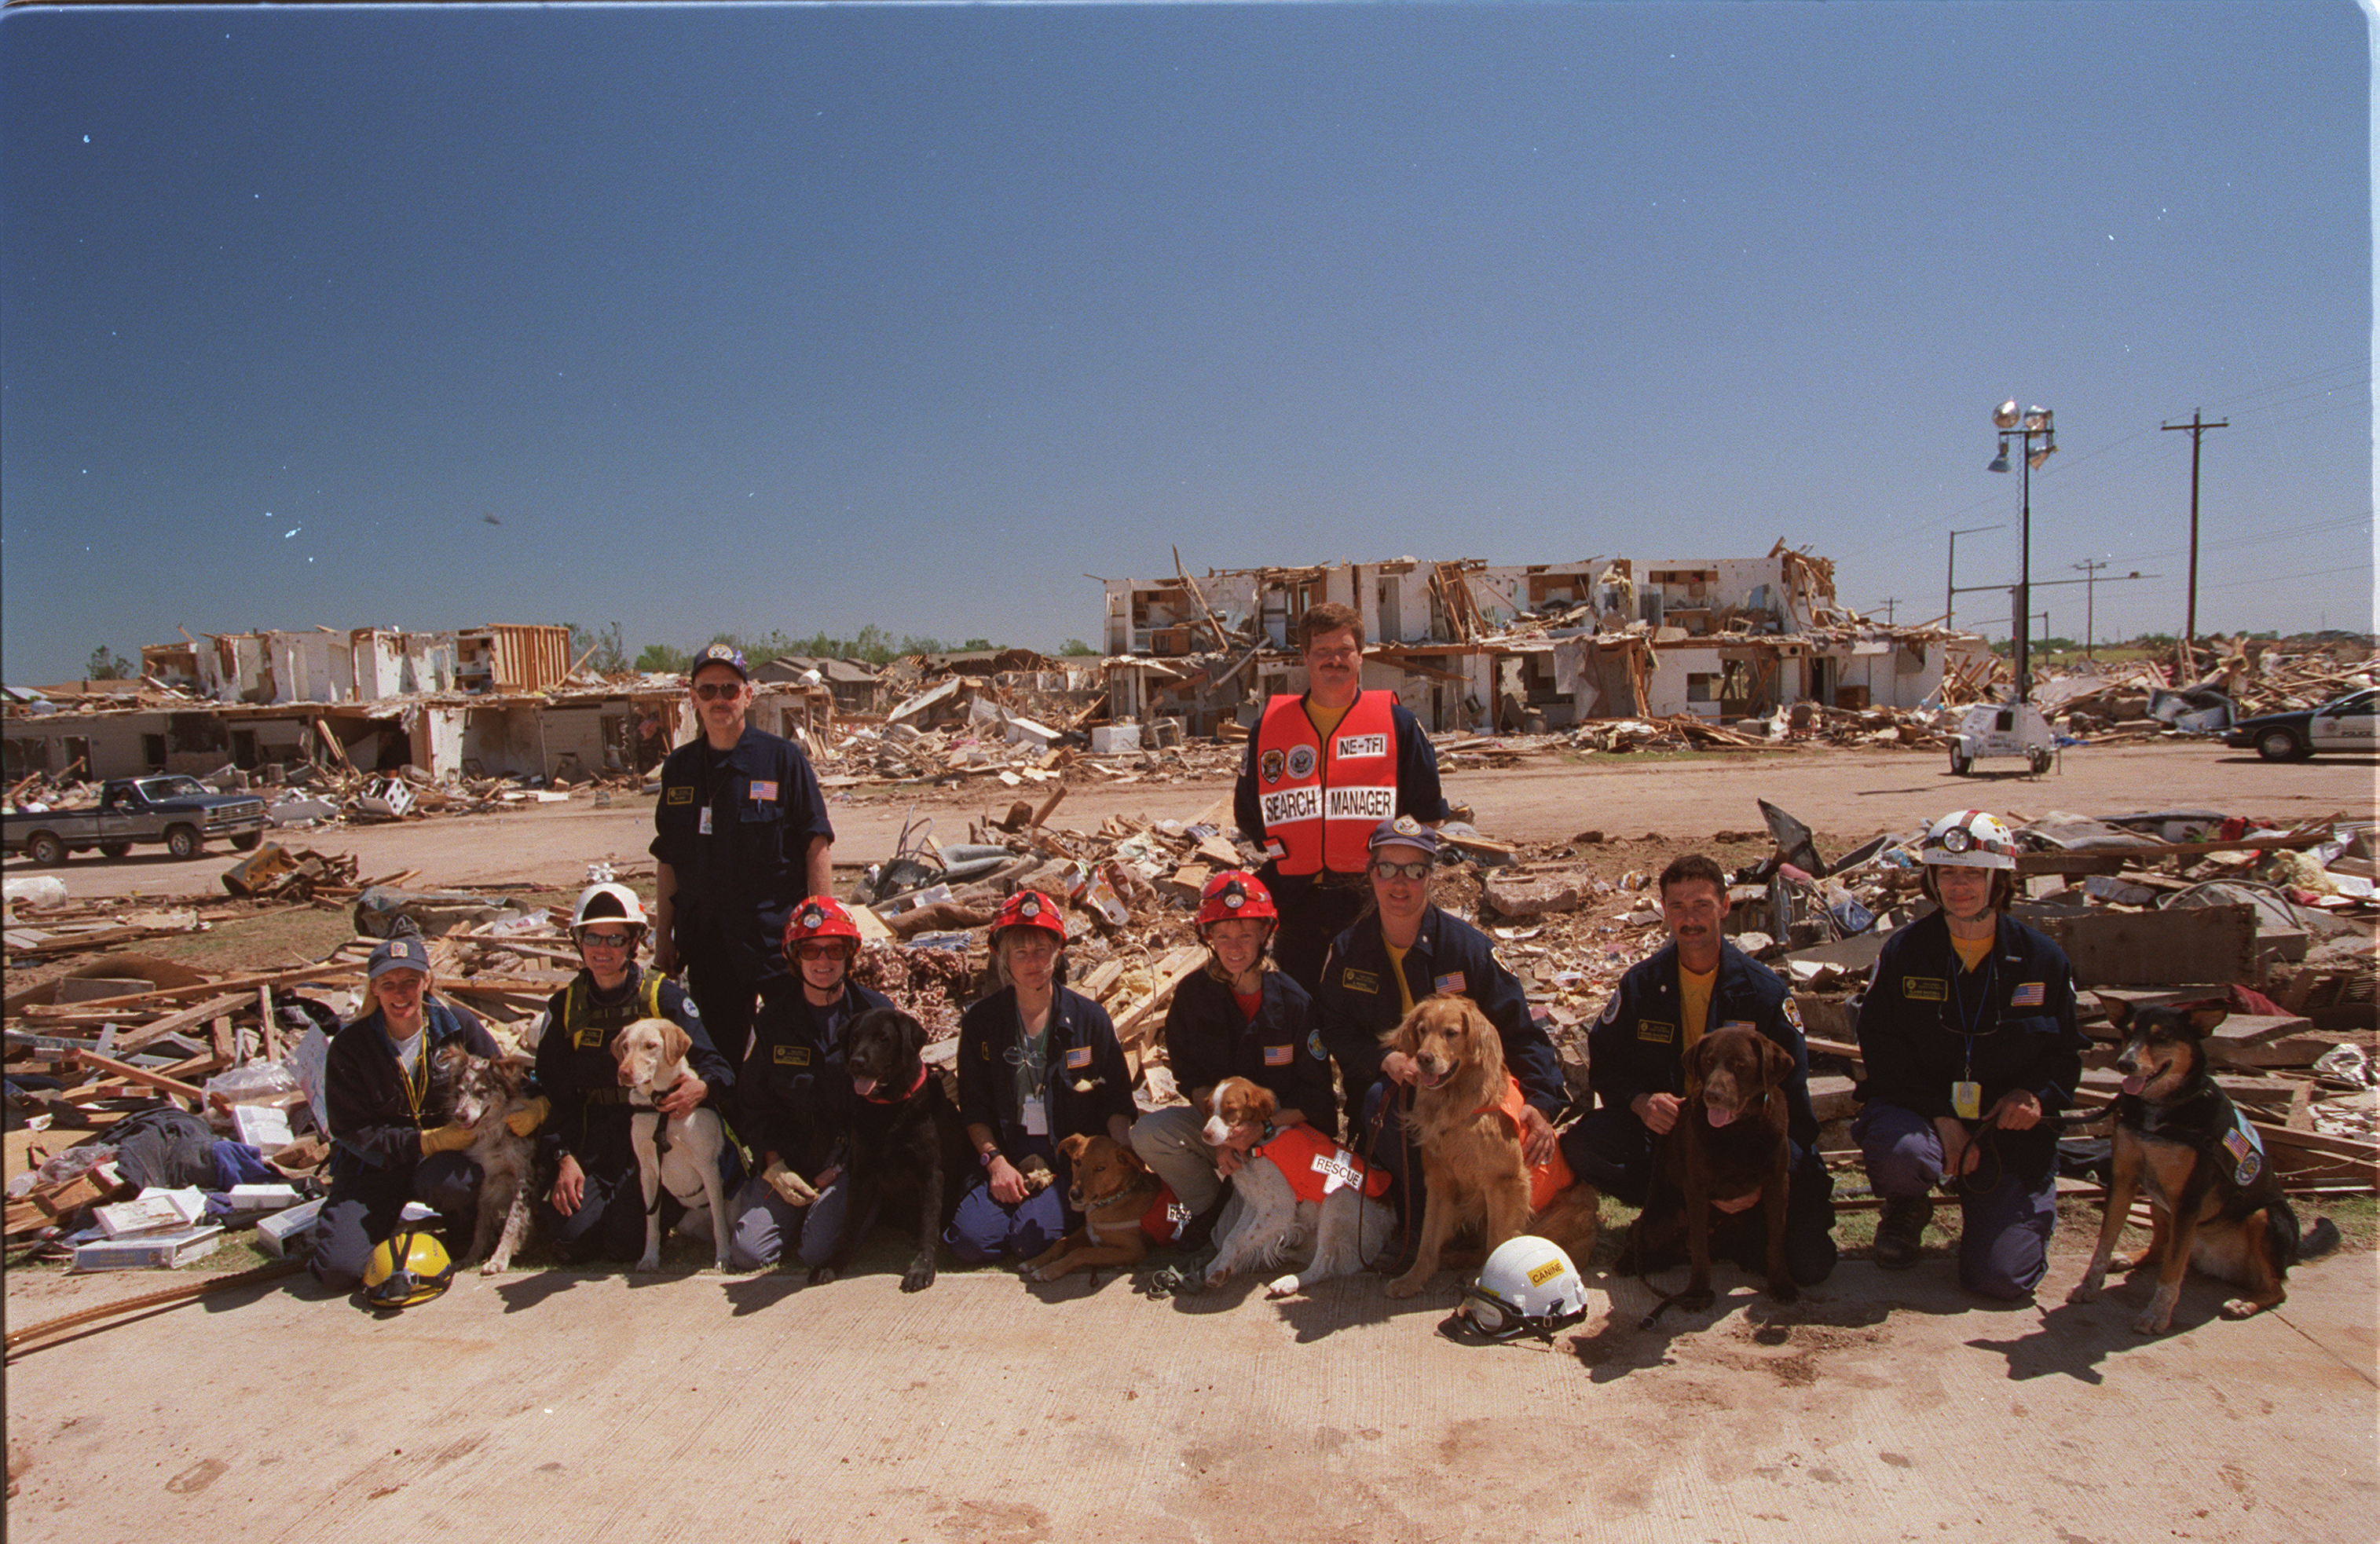 File:FEMA - 3782 - Photograph by Andrea Booher taken on 05